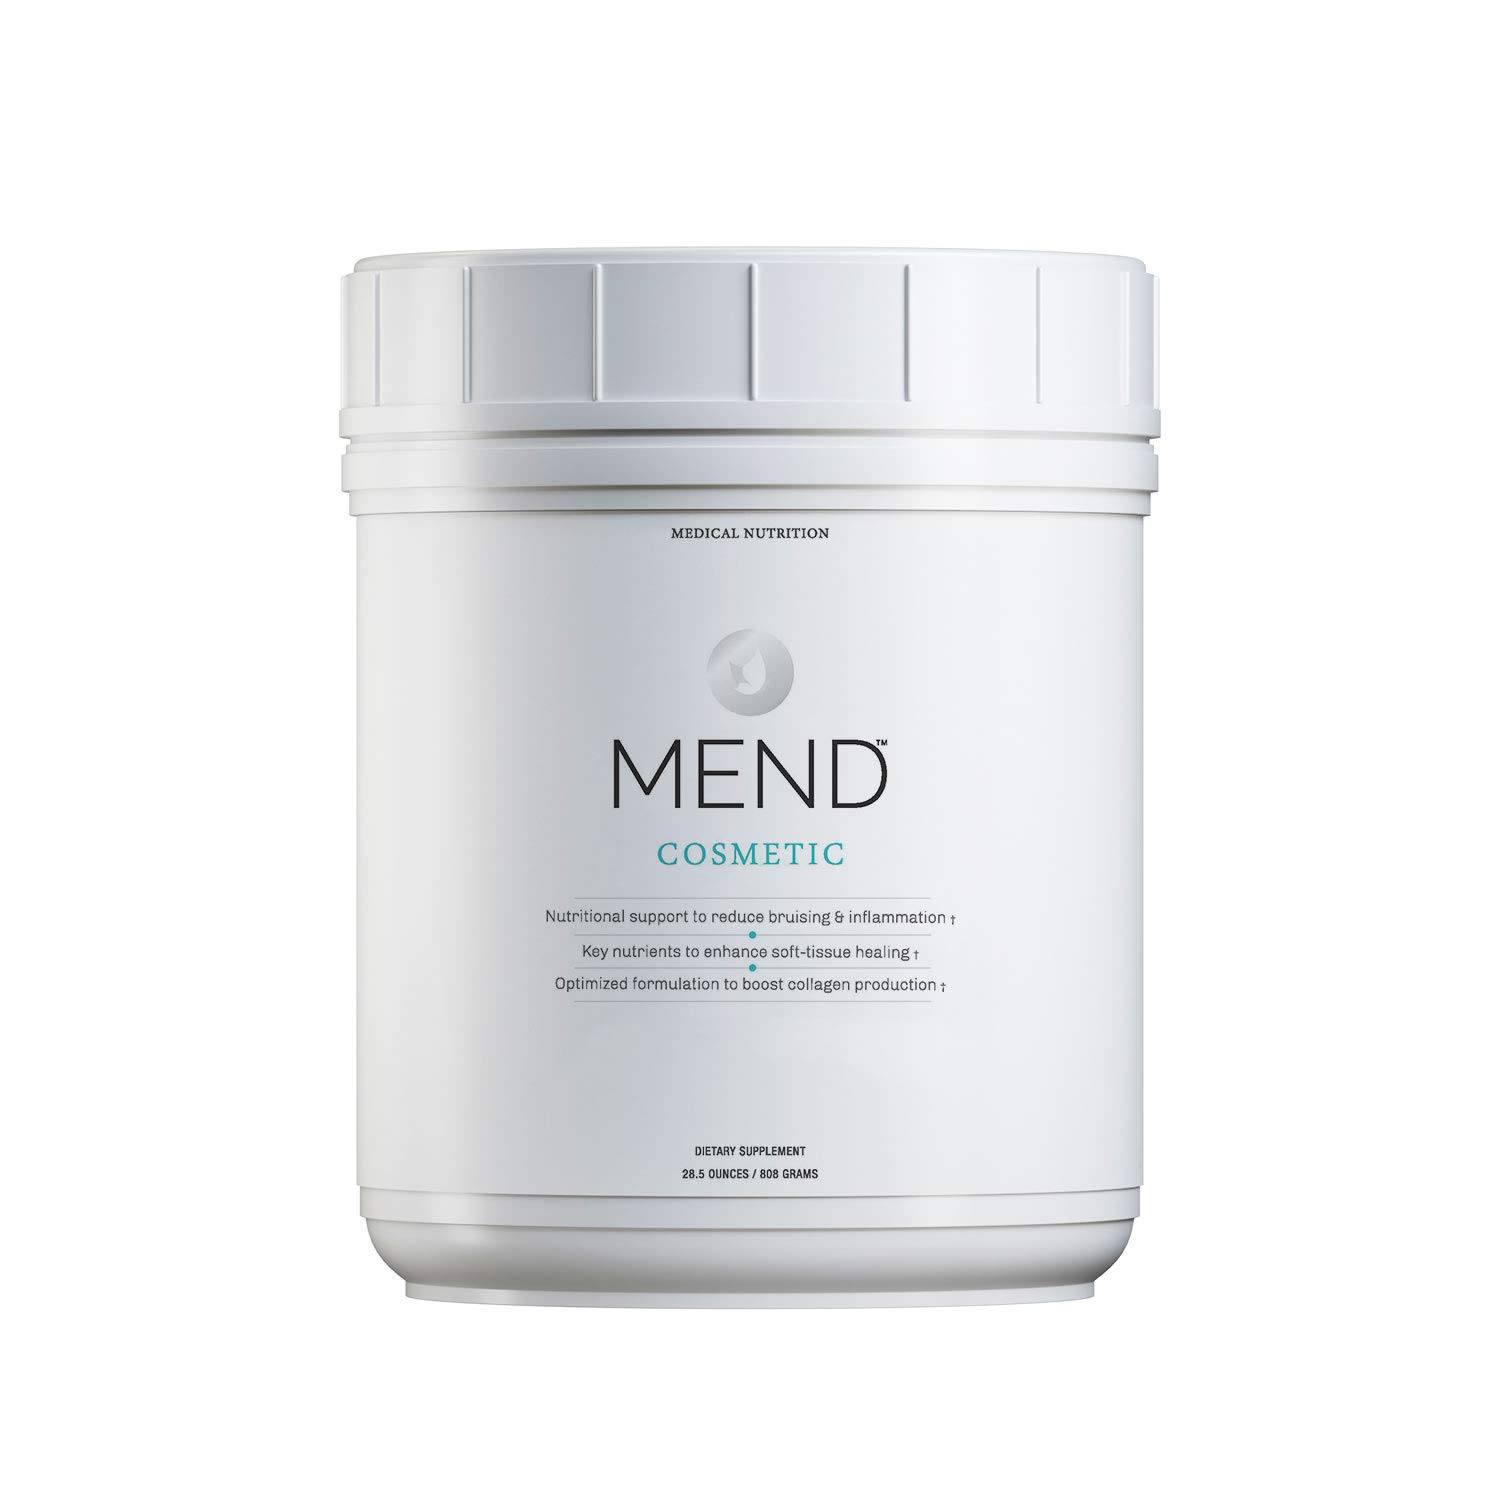 New MEND Cosmetic Nutrition for Skin Health, Bruising, and Collagen, Vanilla, 20 Servings